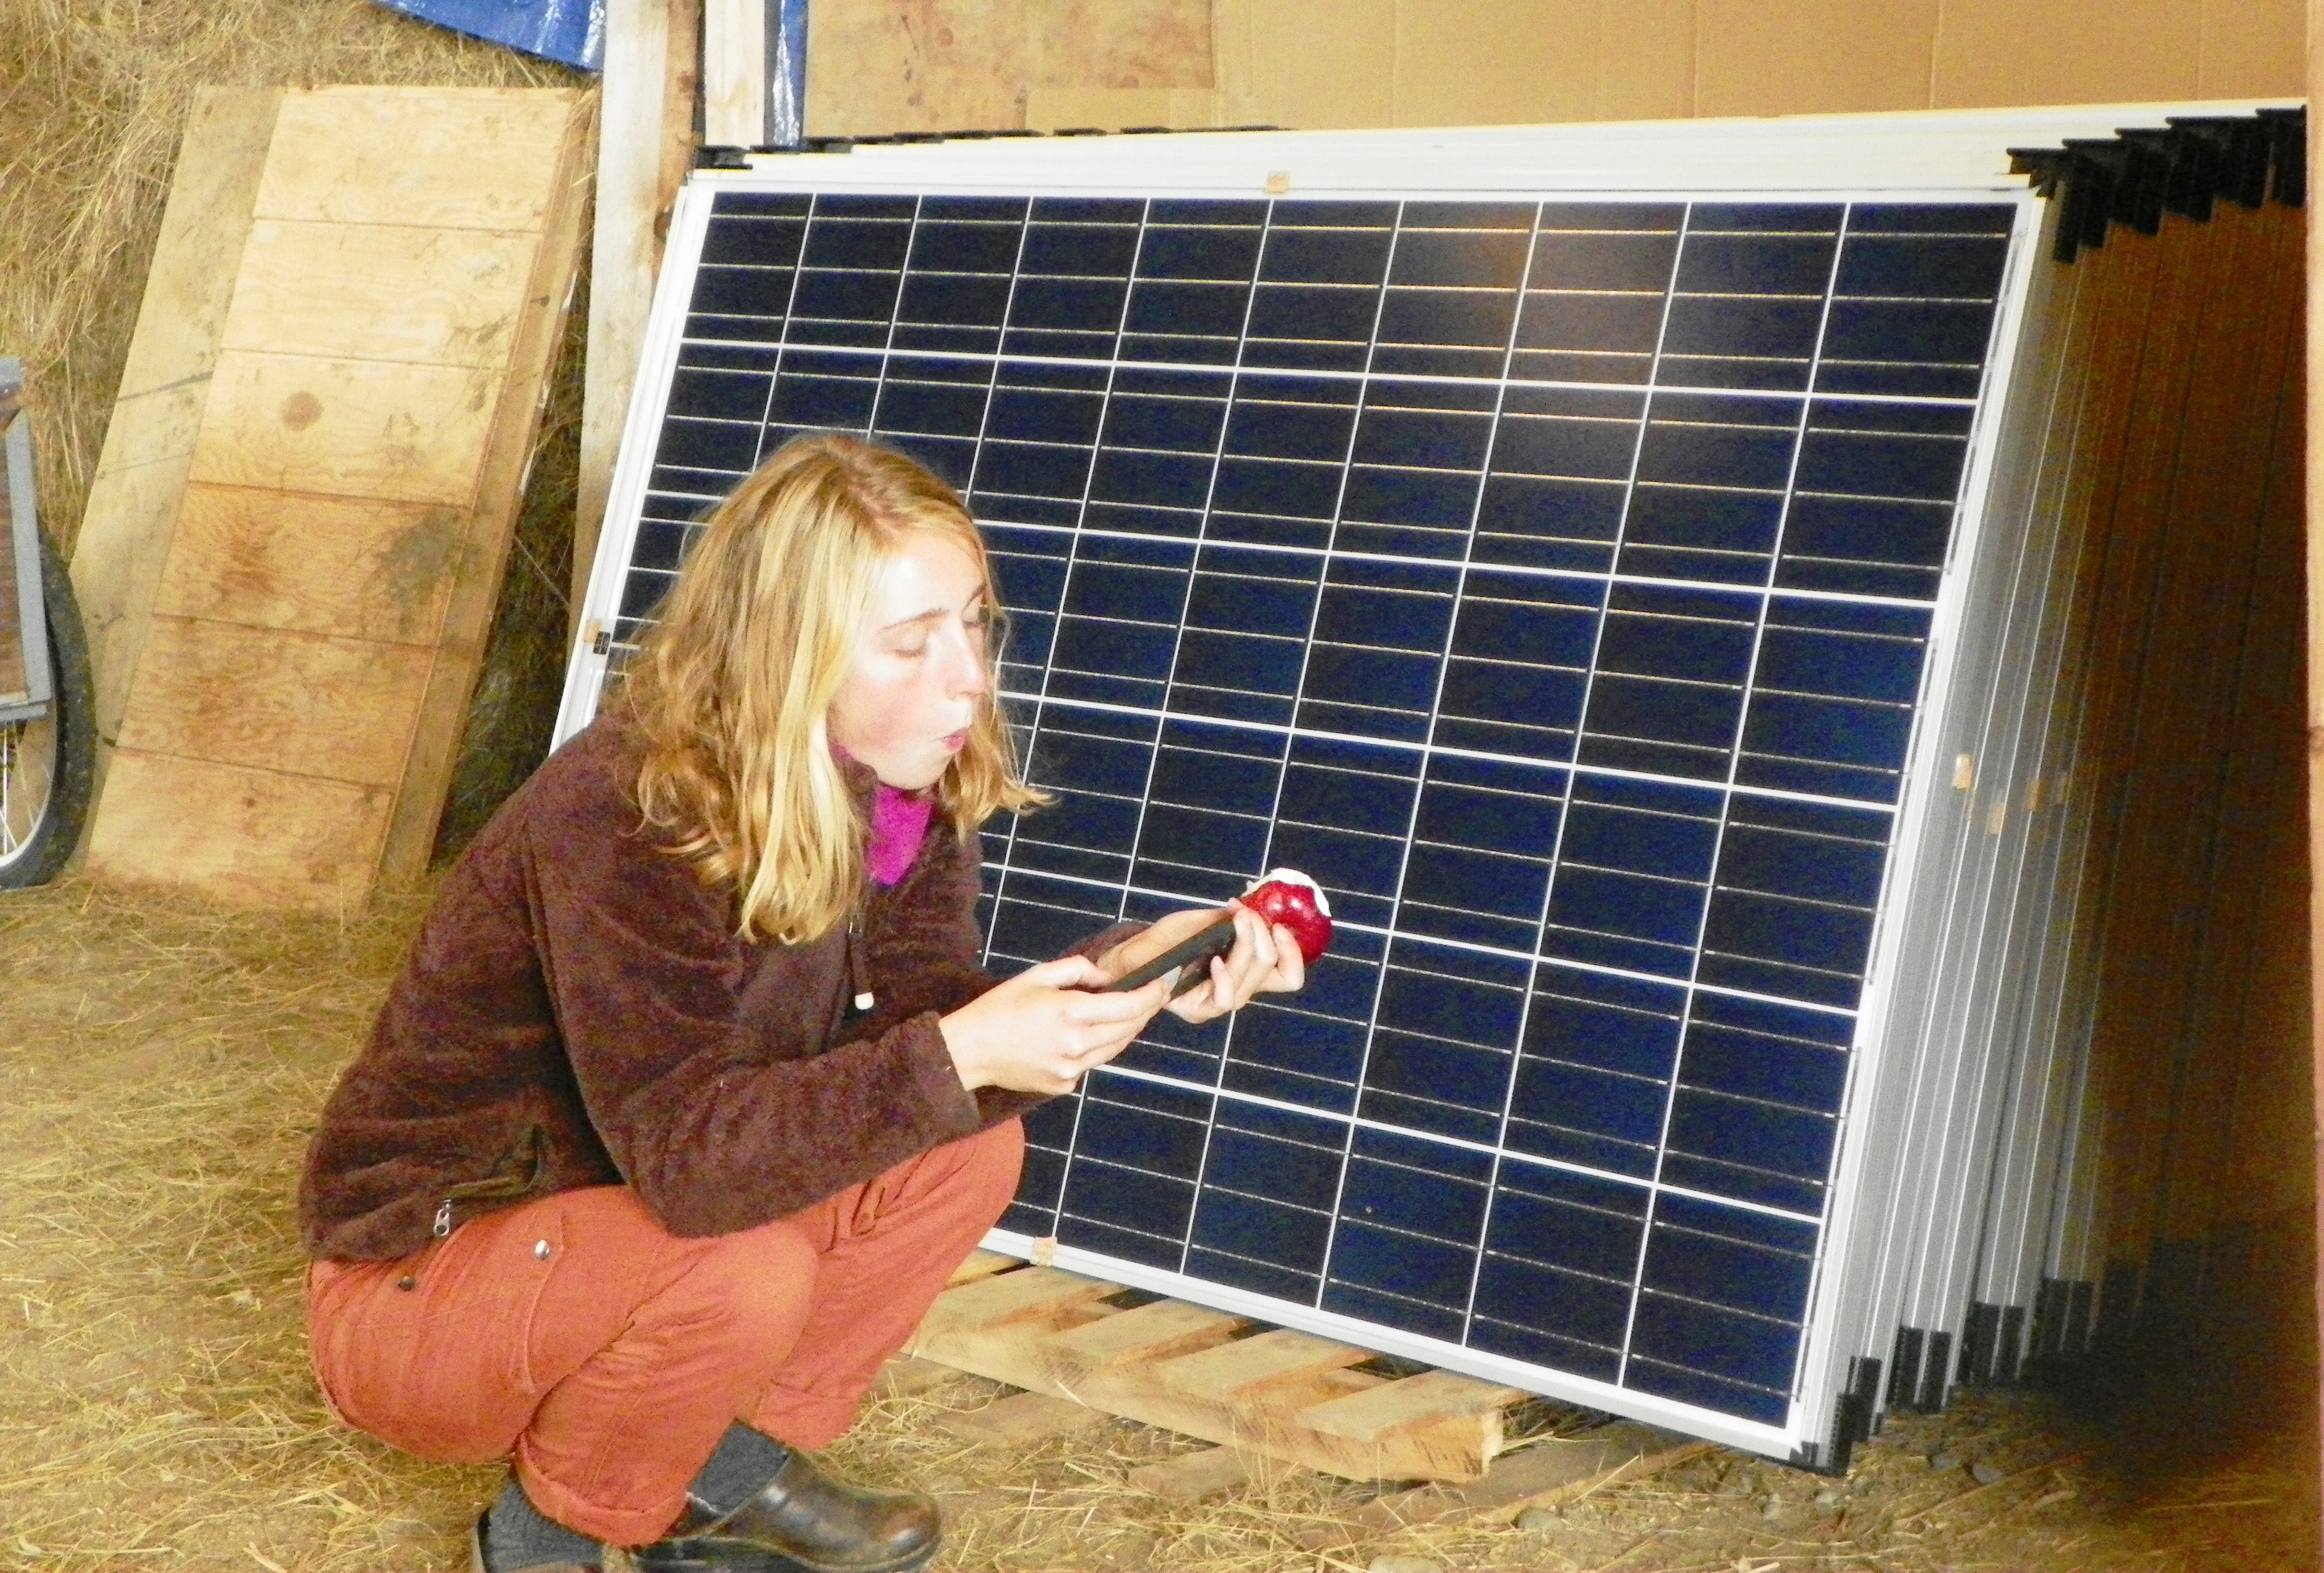 A student takes a break from the barn build next to the solar modules, waiting for installation.